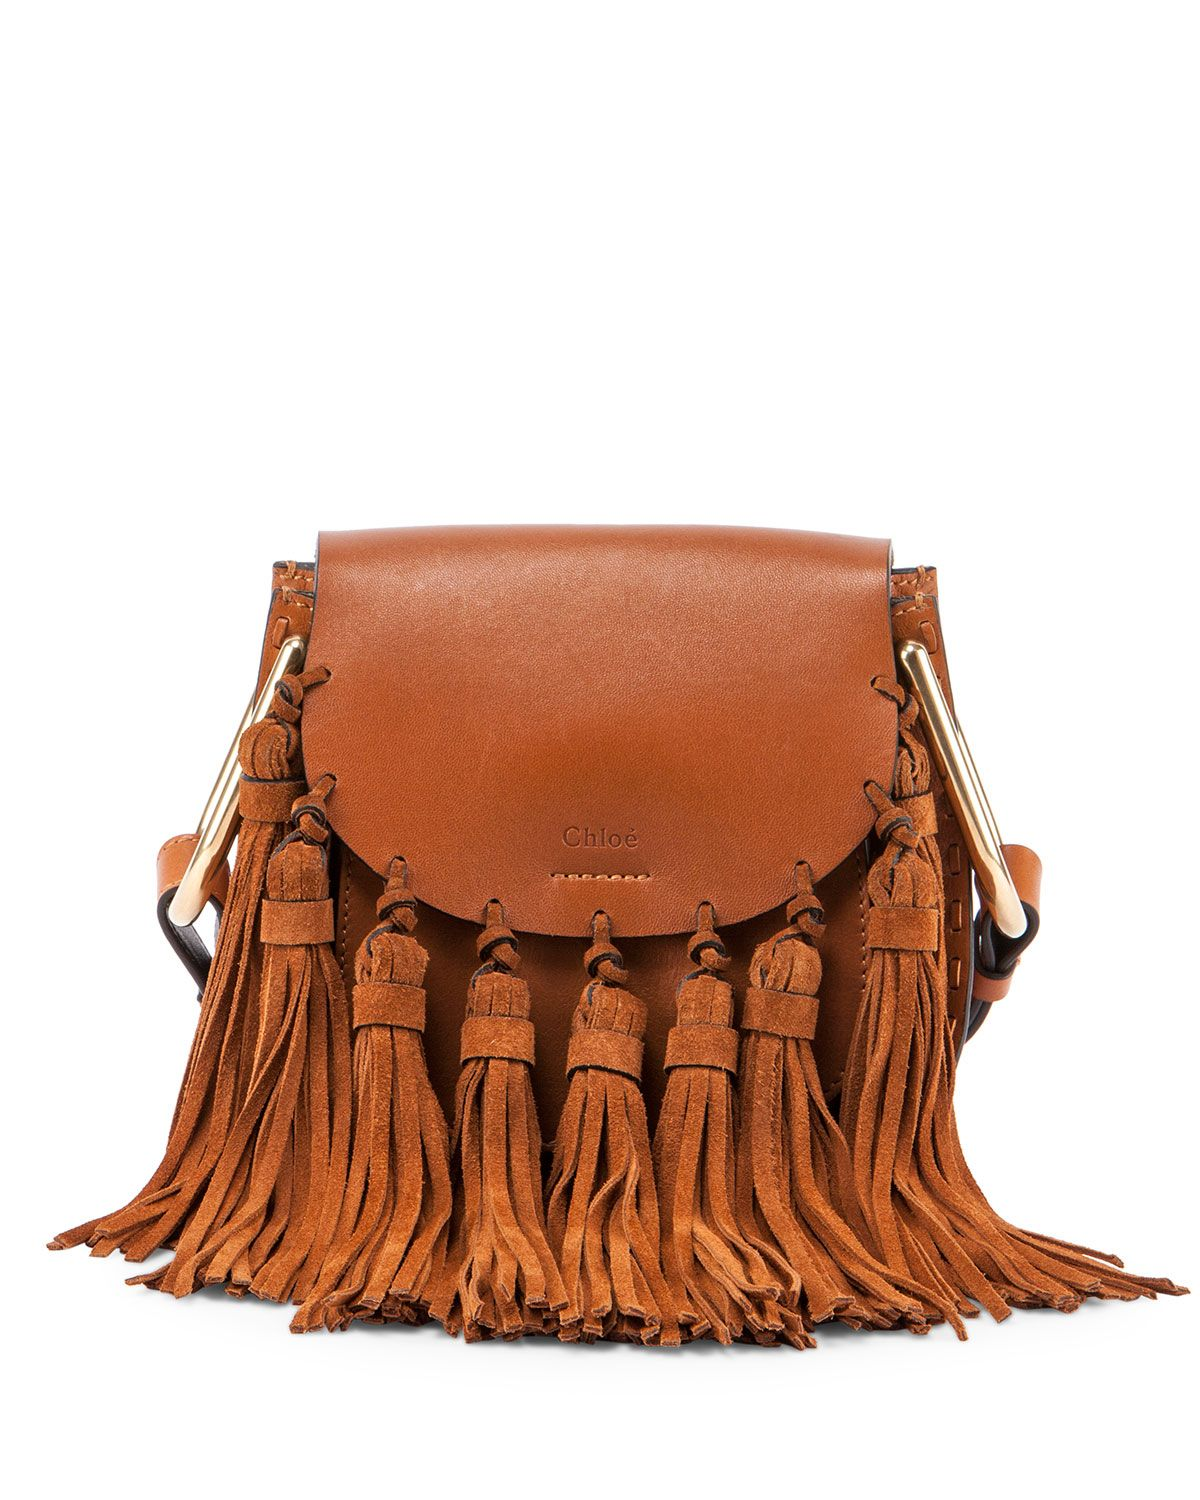 Fashion week Wear you Trendswould a bucket backpack for woman